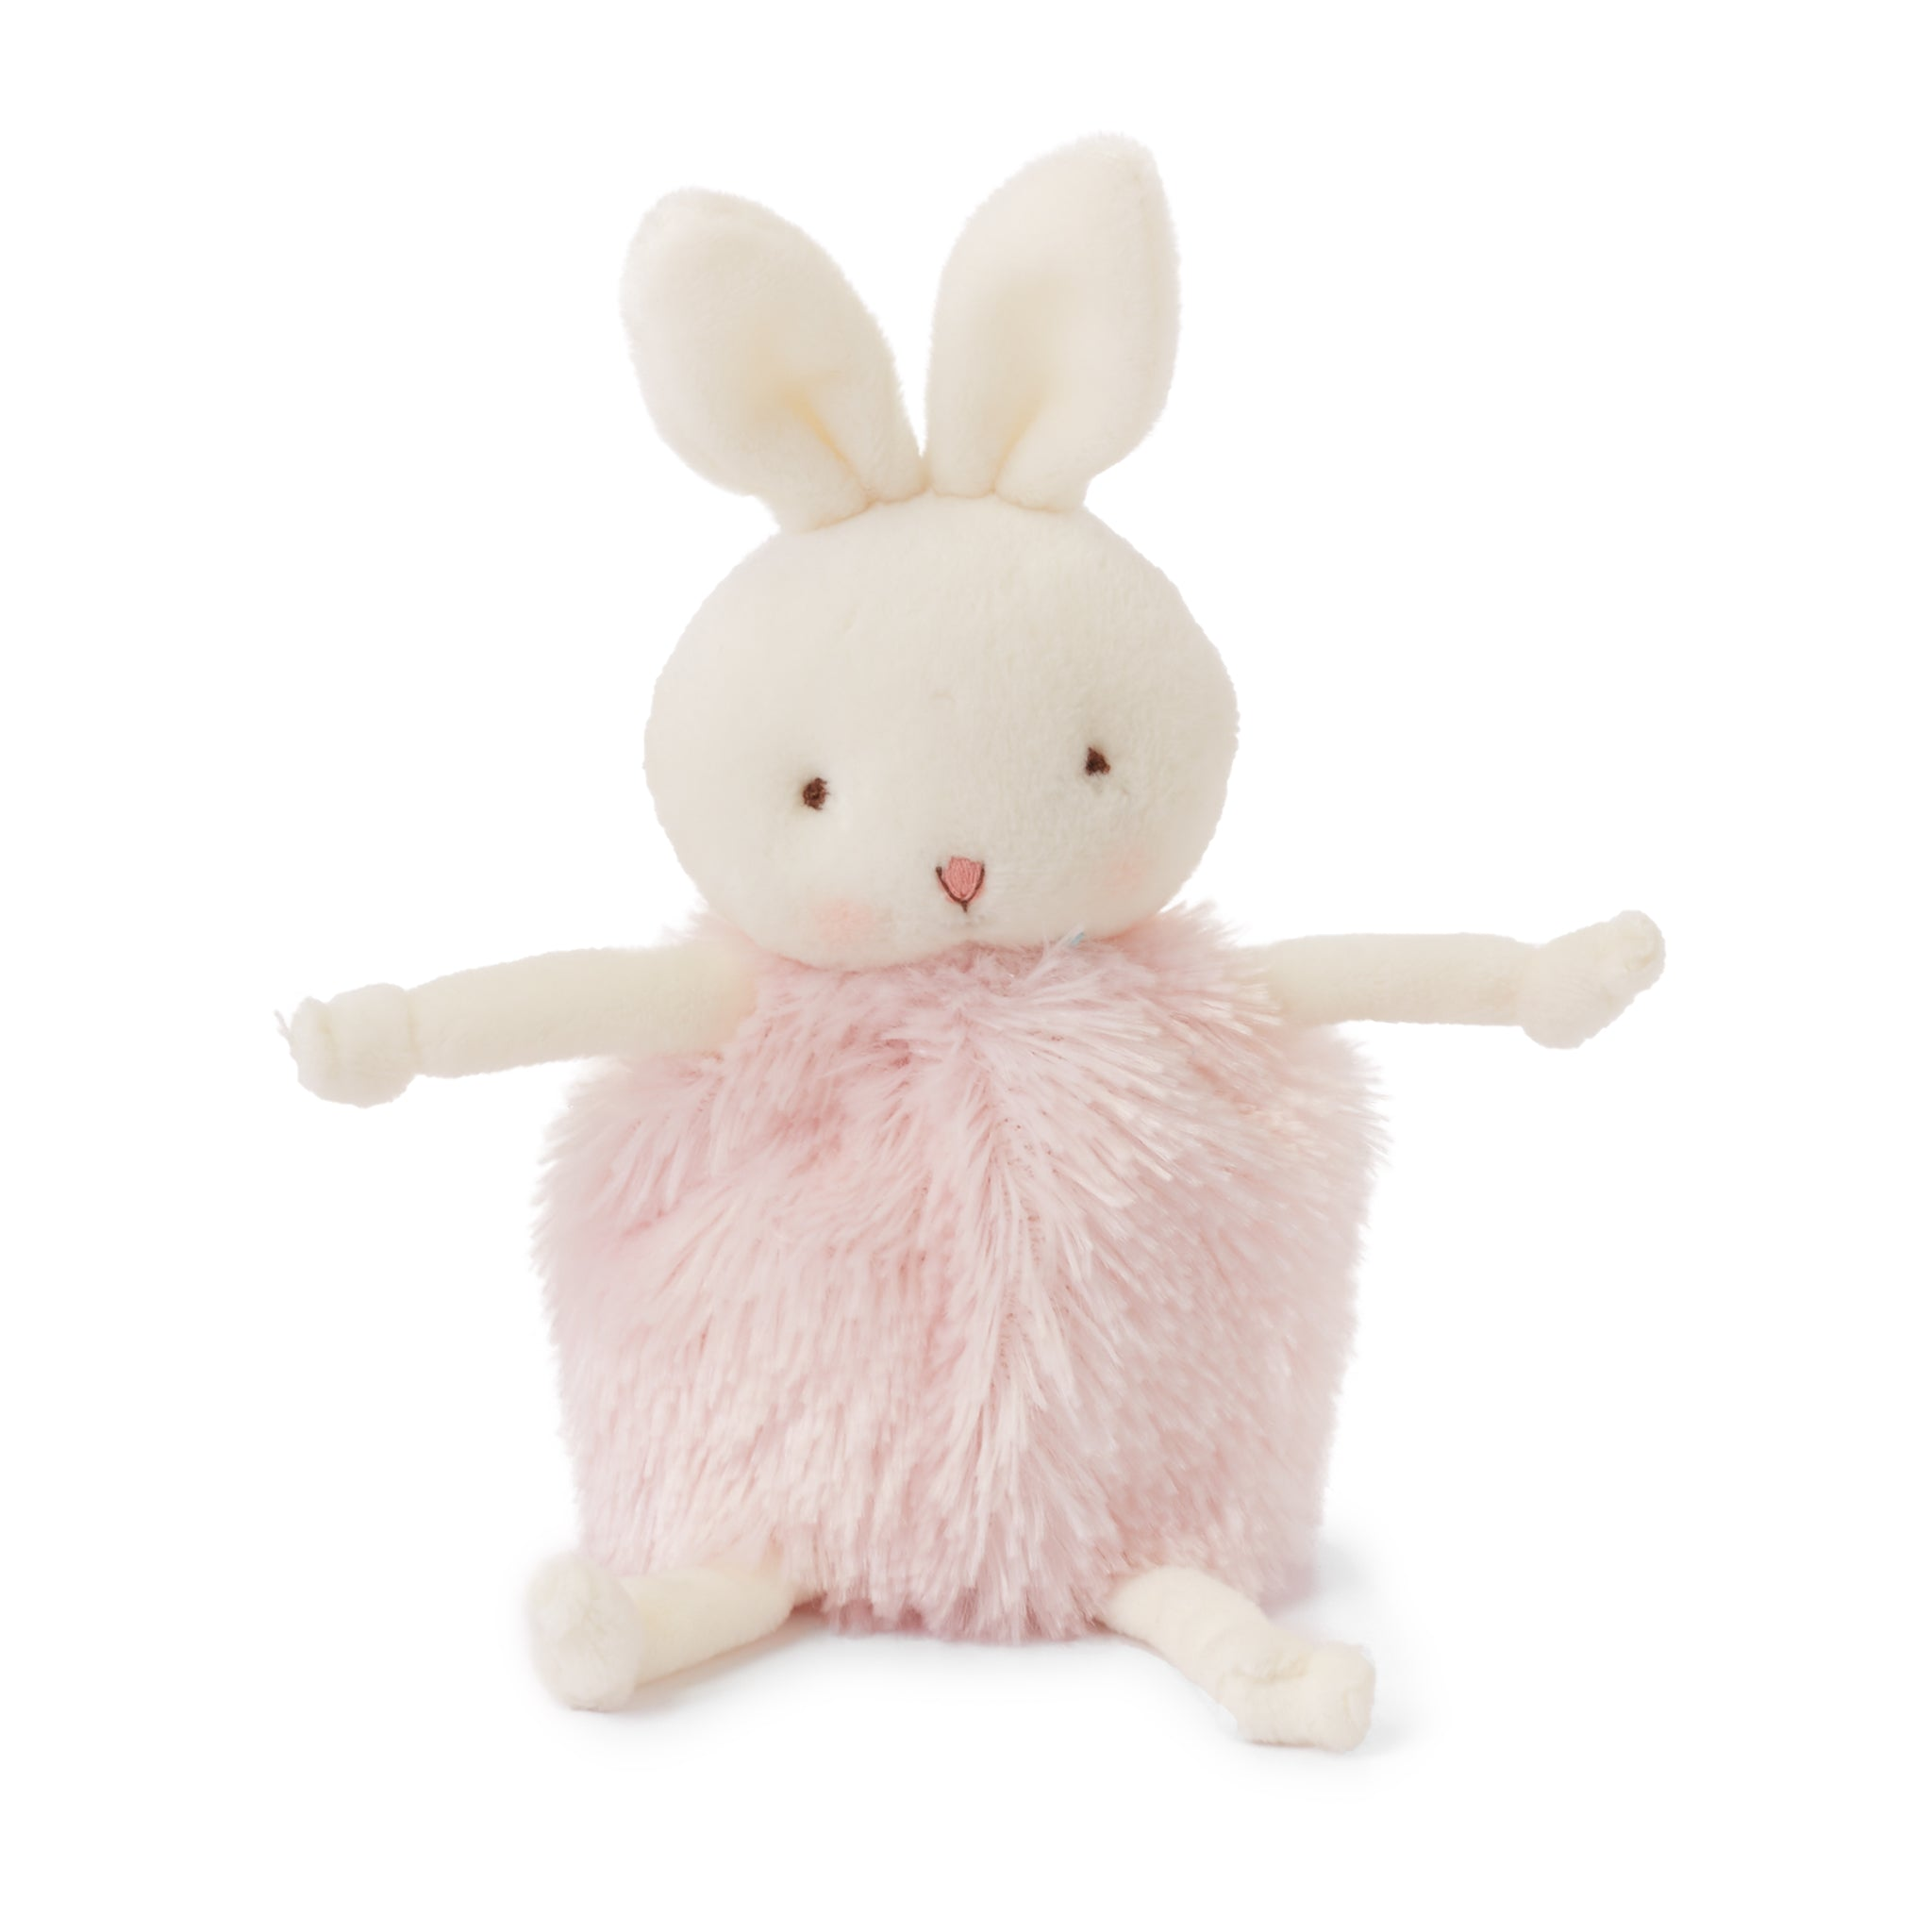 Roly Poly Blossom- Pink Bunny - Limited Edition